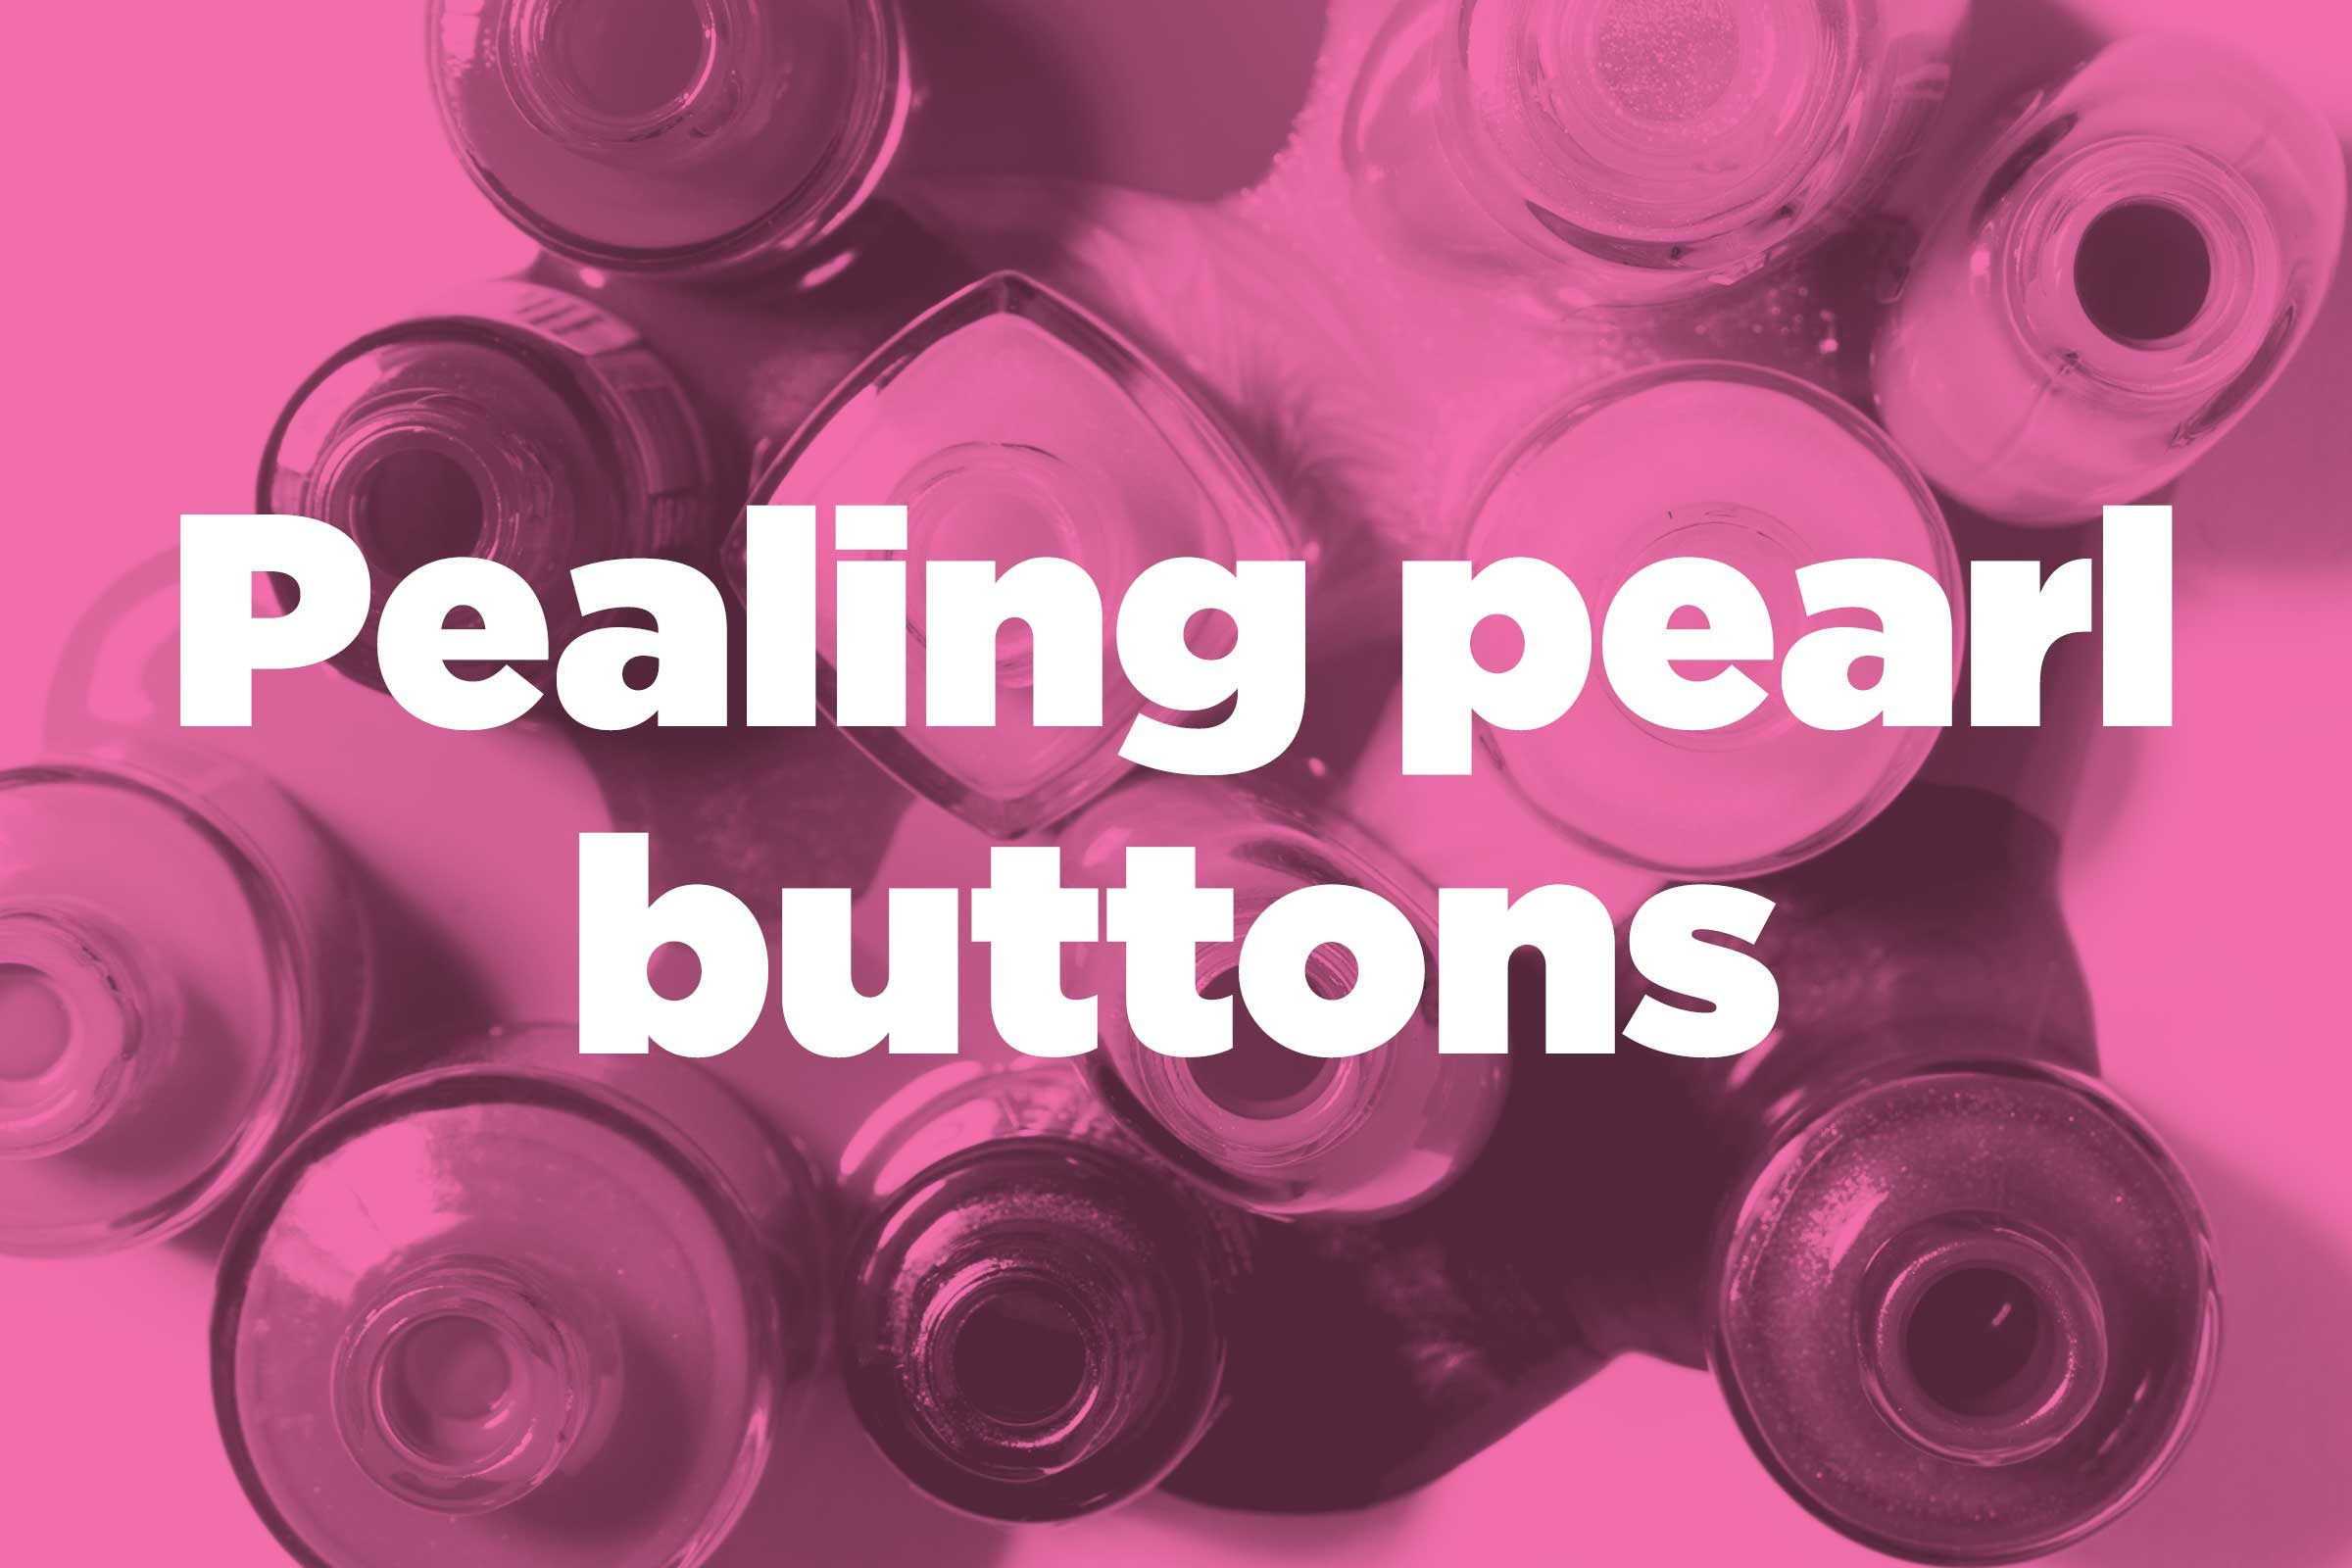 Fix peeling pearl buttons